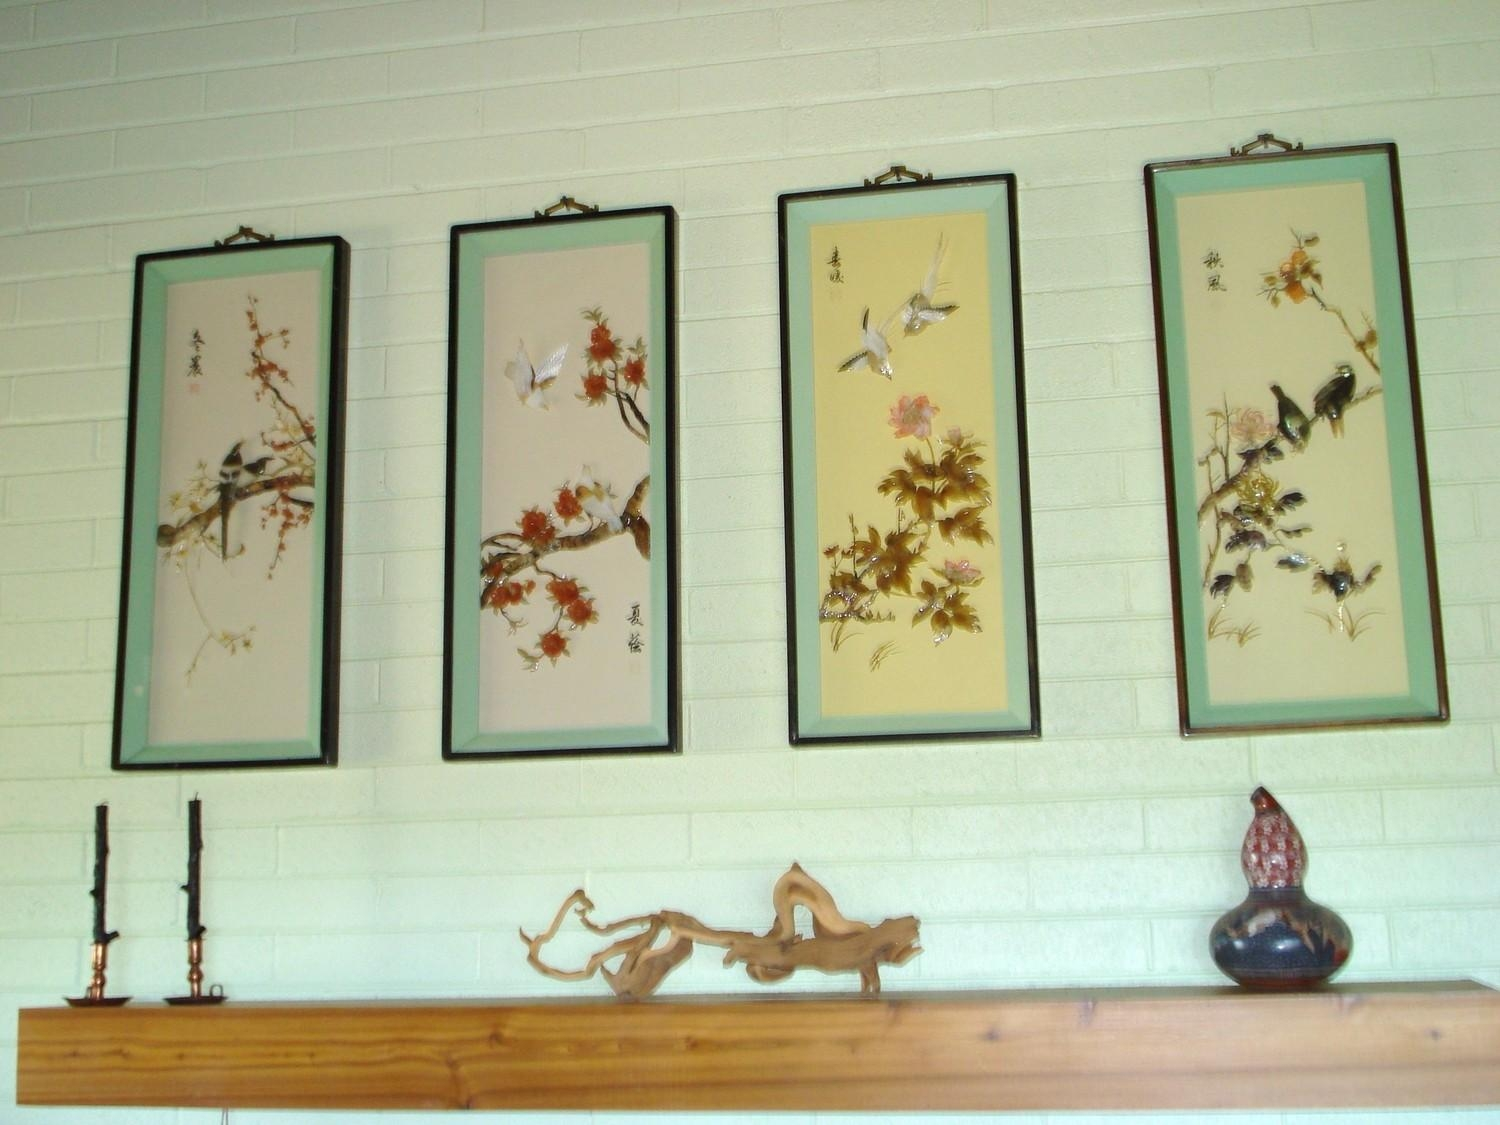 Vintage Chinese Shadow Box Pictures Of The Four Seasons Jade within Mother Of Pearl Wall Art